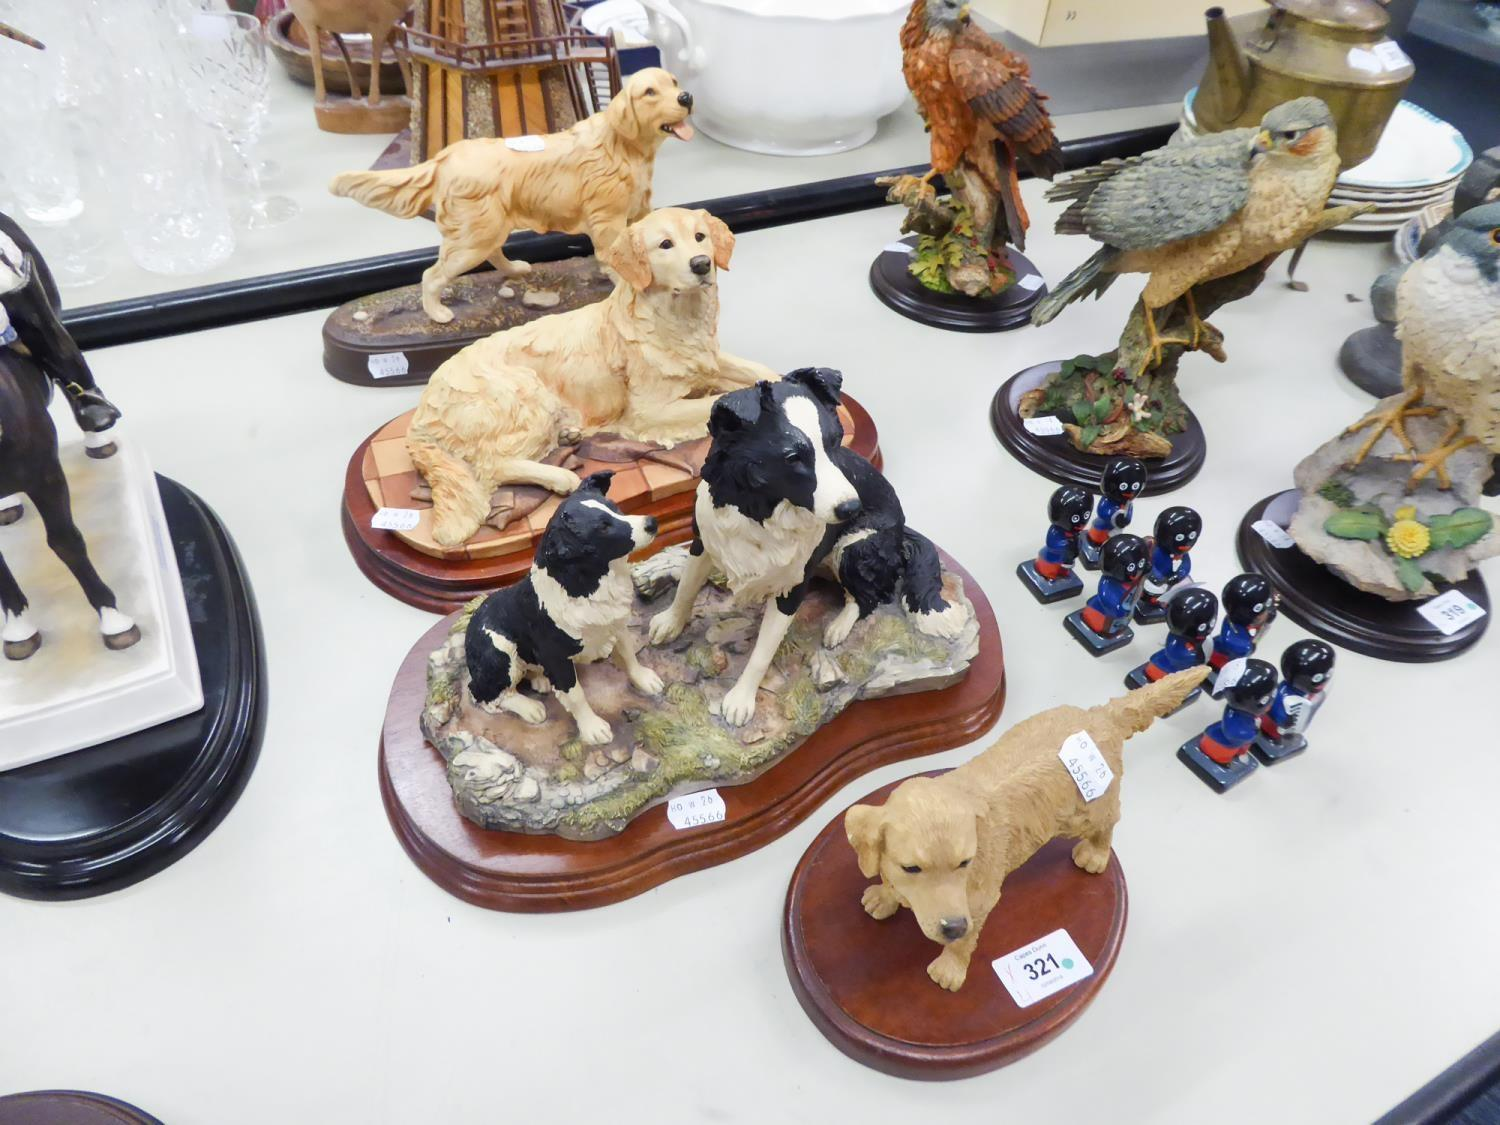 Lot 321 - A MODEL BESWICK FIGURE OF A GOLDEN RETRIEVER ON A PLINTH AND TWO BORDER FINE ARTS OF DOGS ON